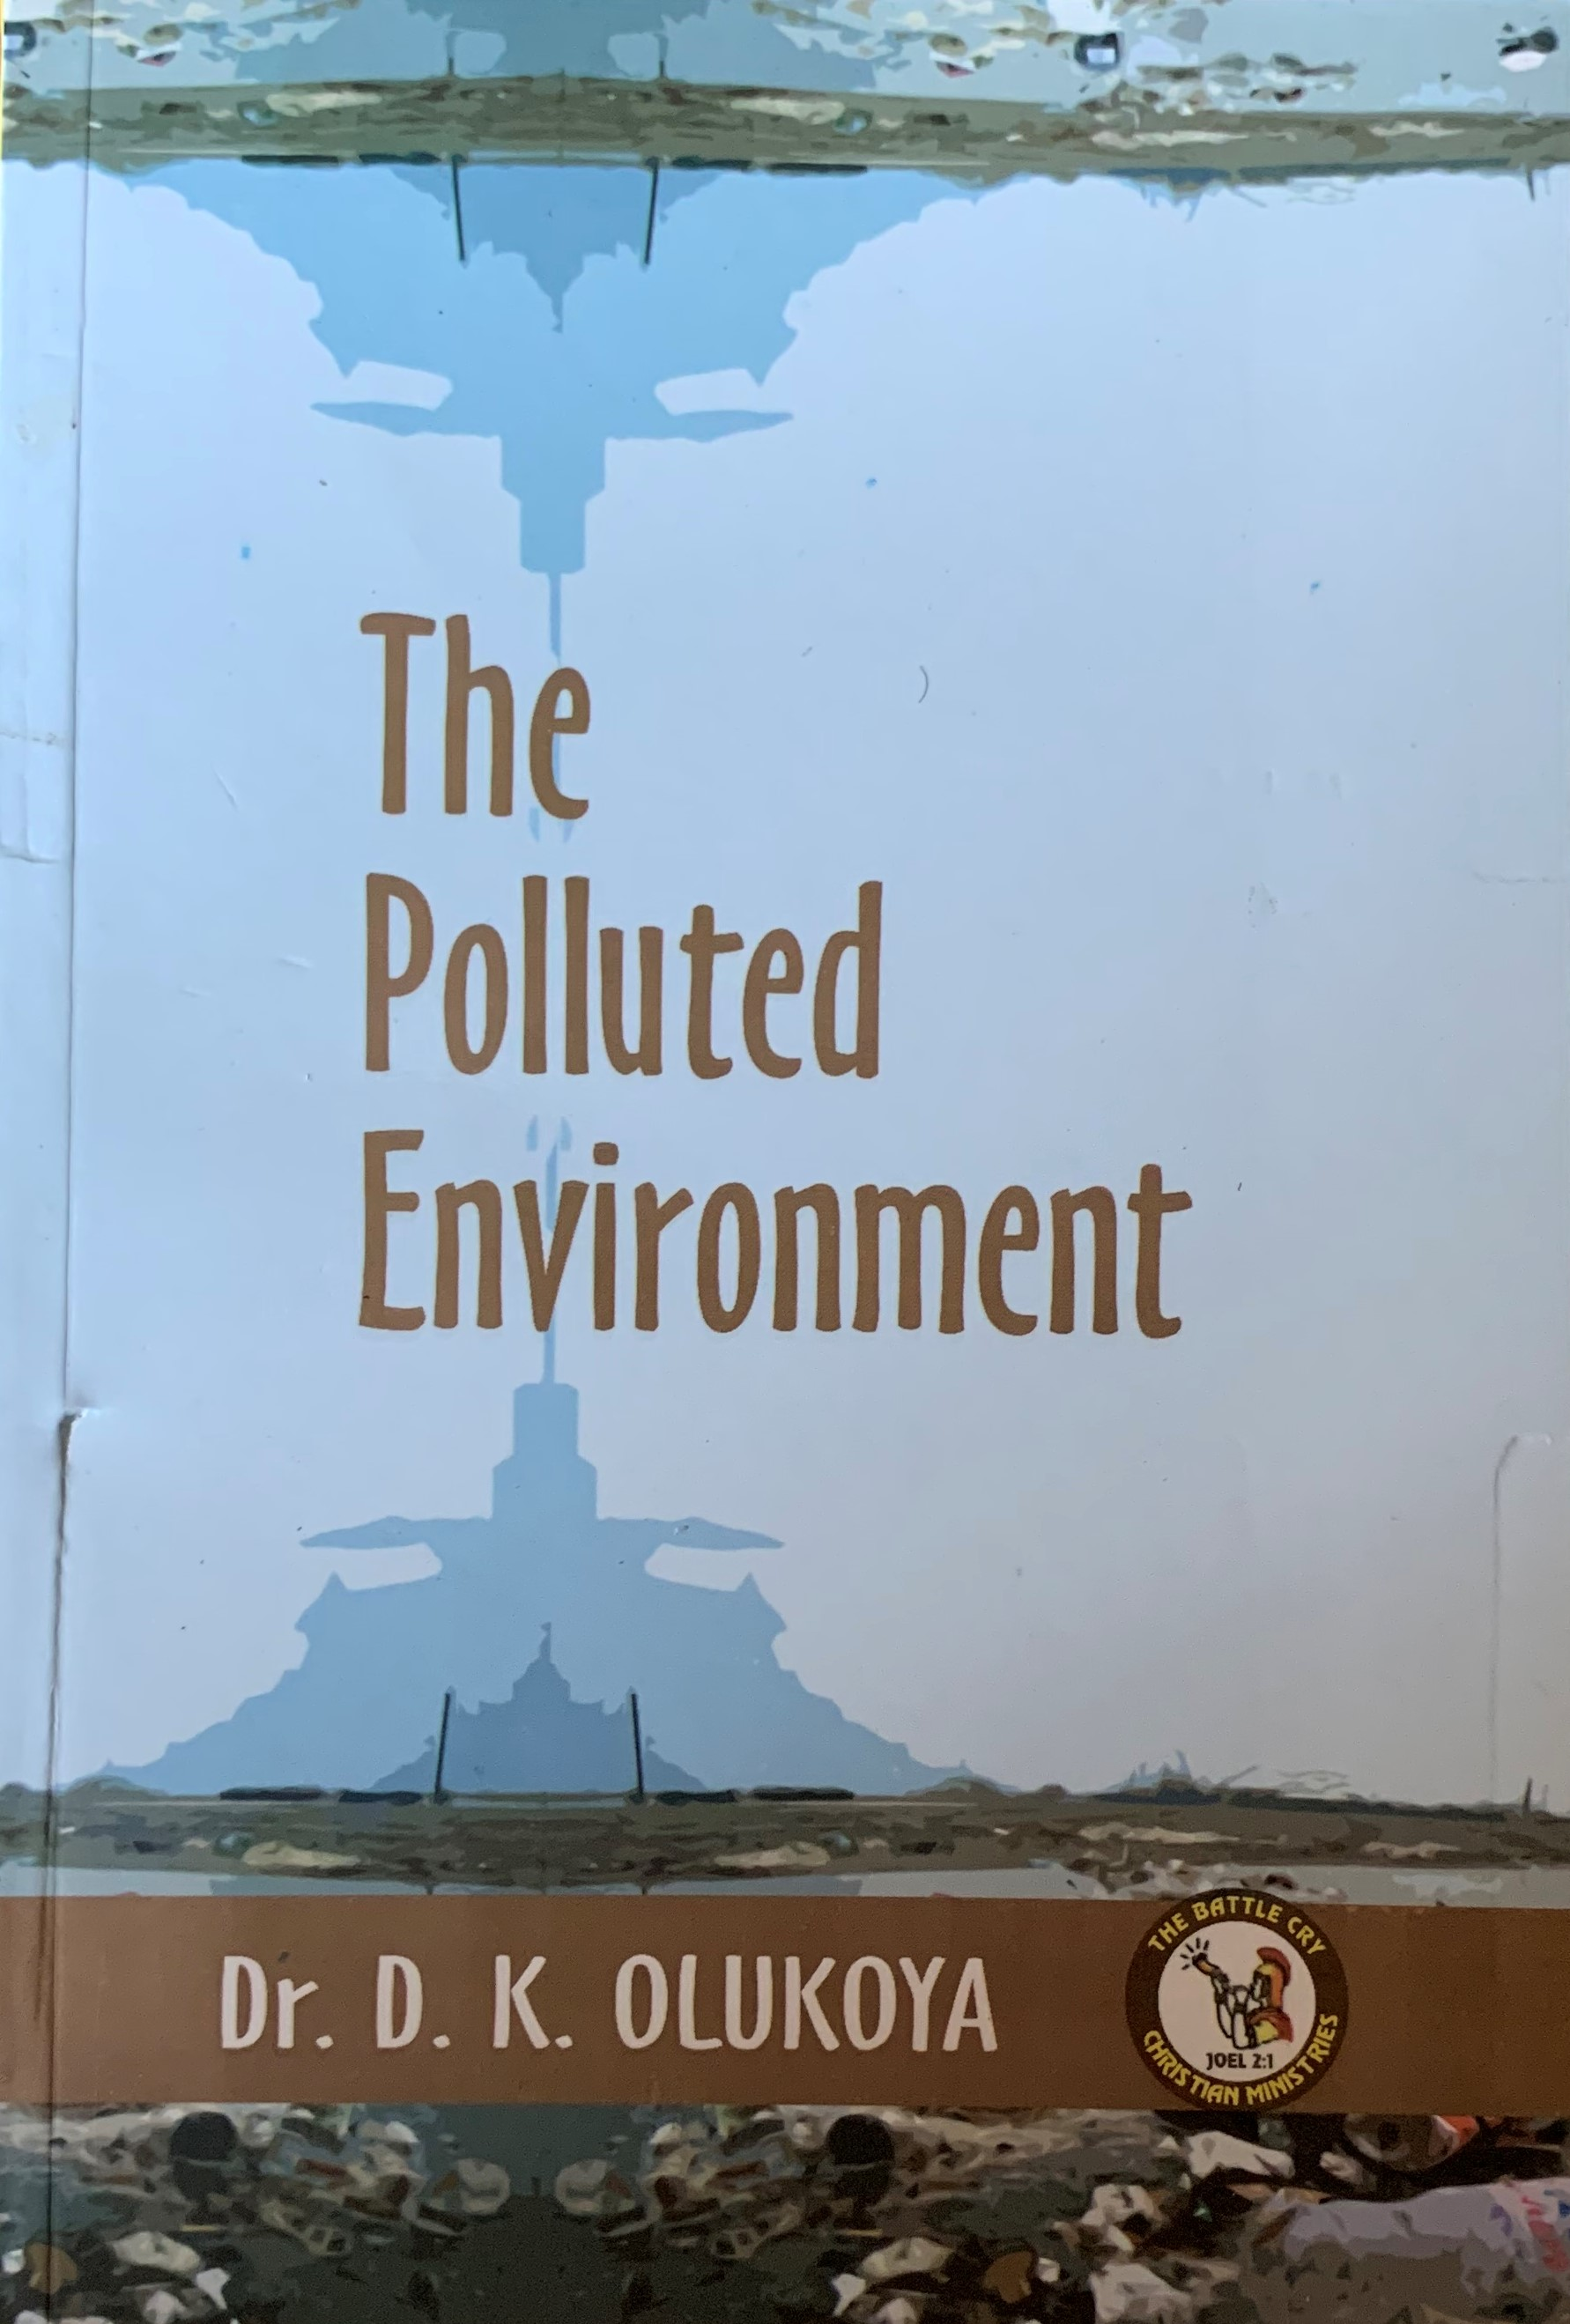 The Polluted Environment--by Dr D k  Olukoya